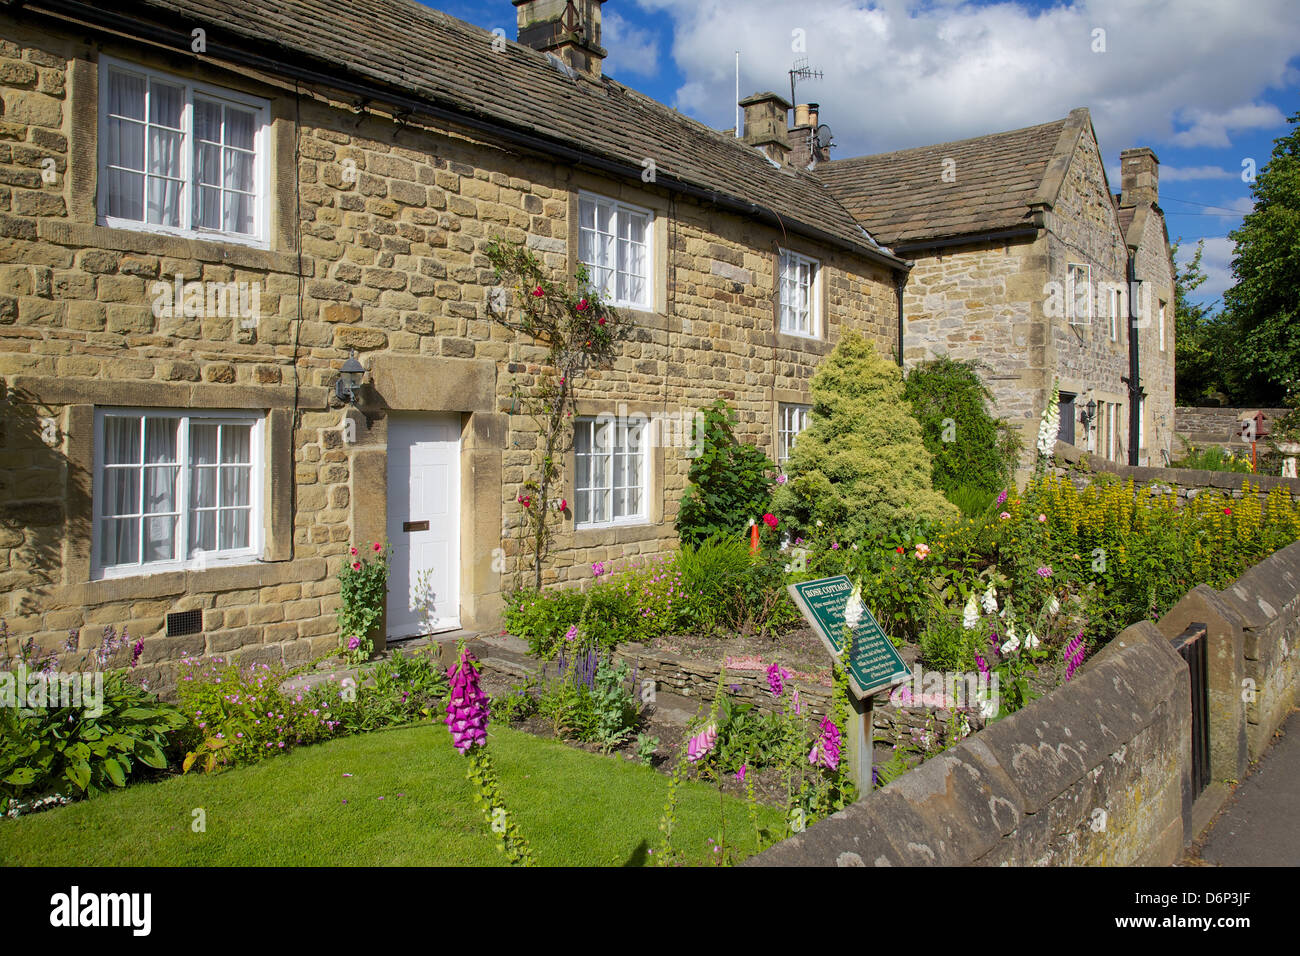 Plague cottages, Eyam, Derbyshire, England, United Kingdom, Europe - Stock Image